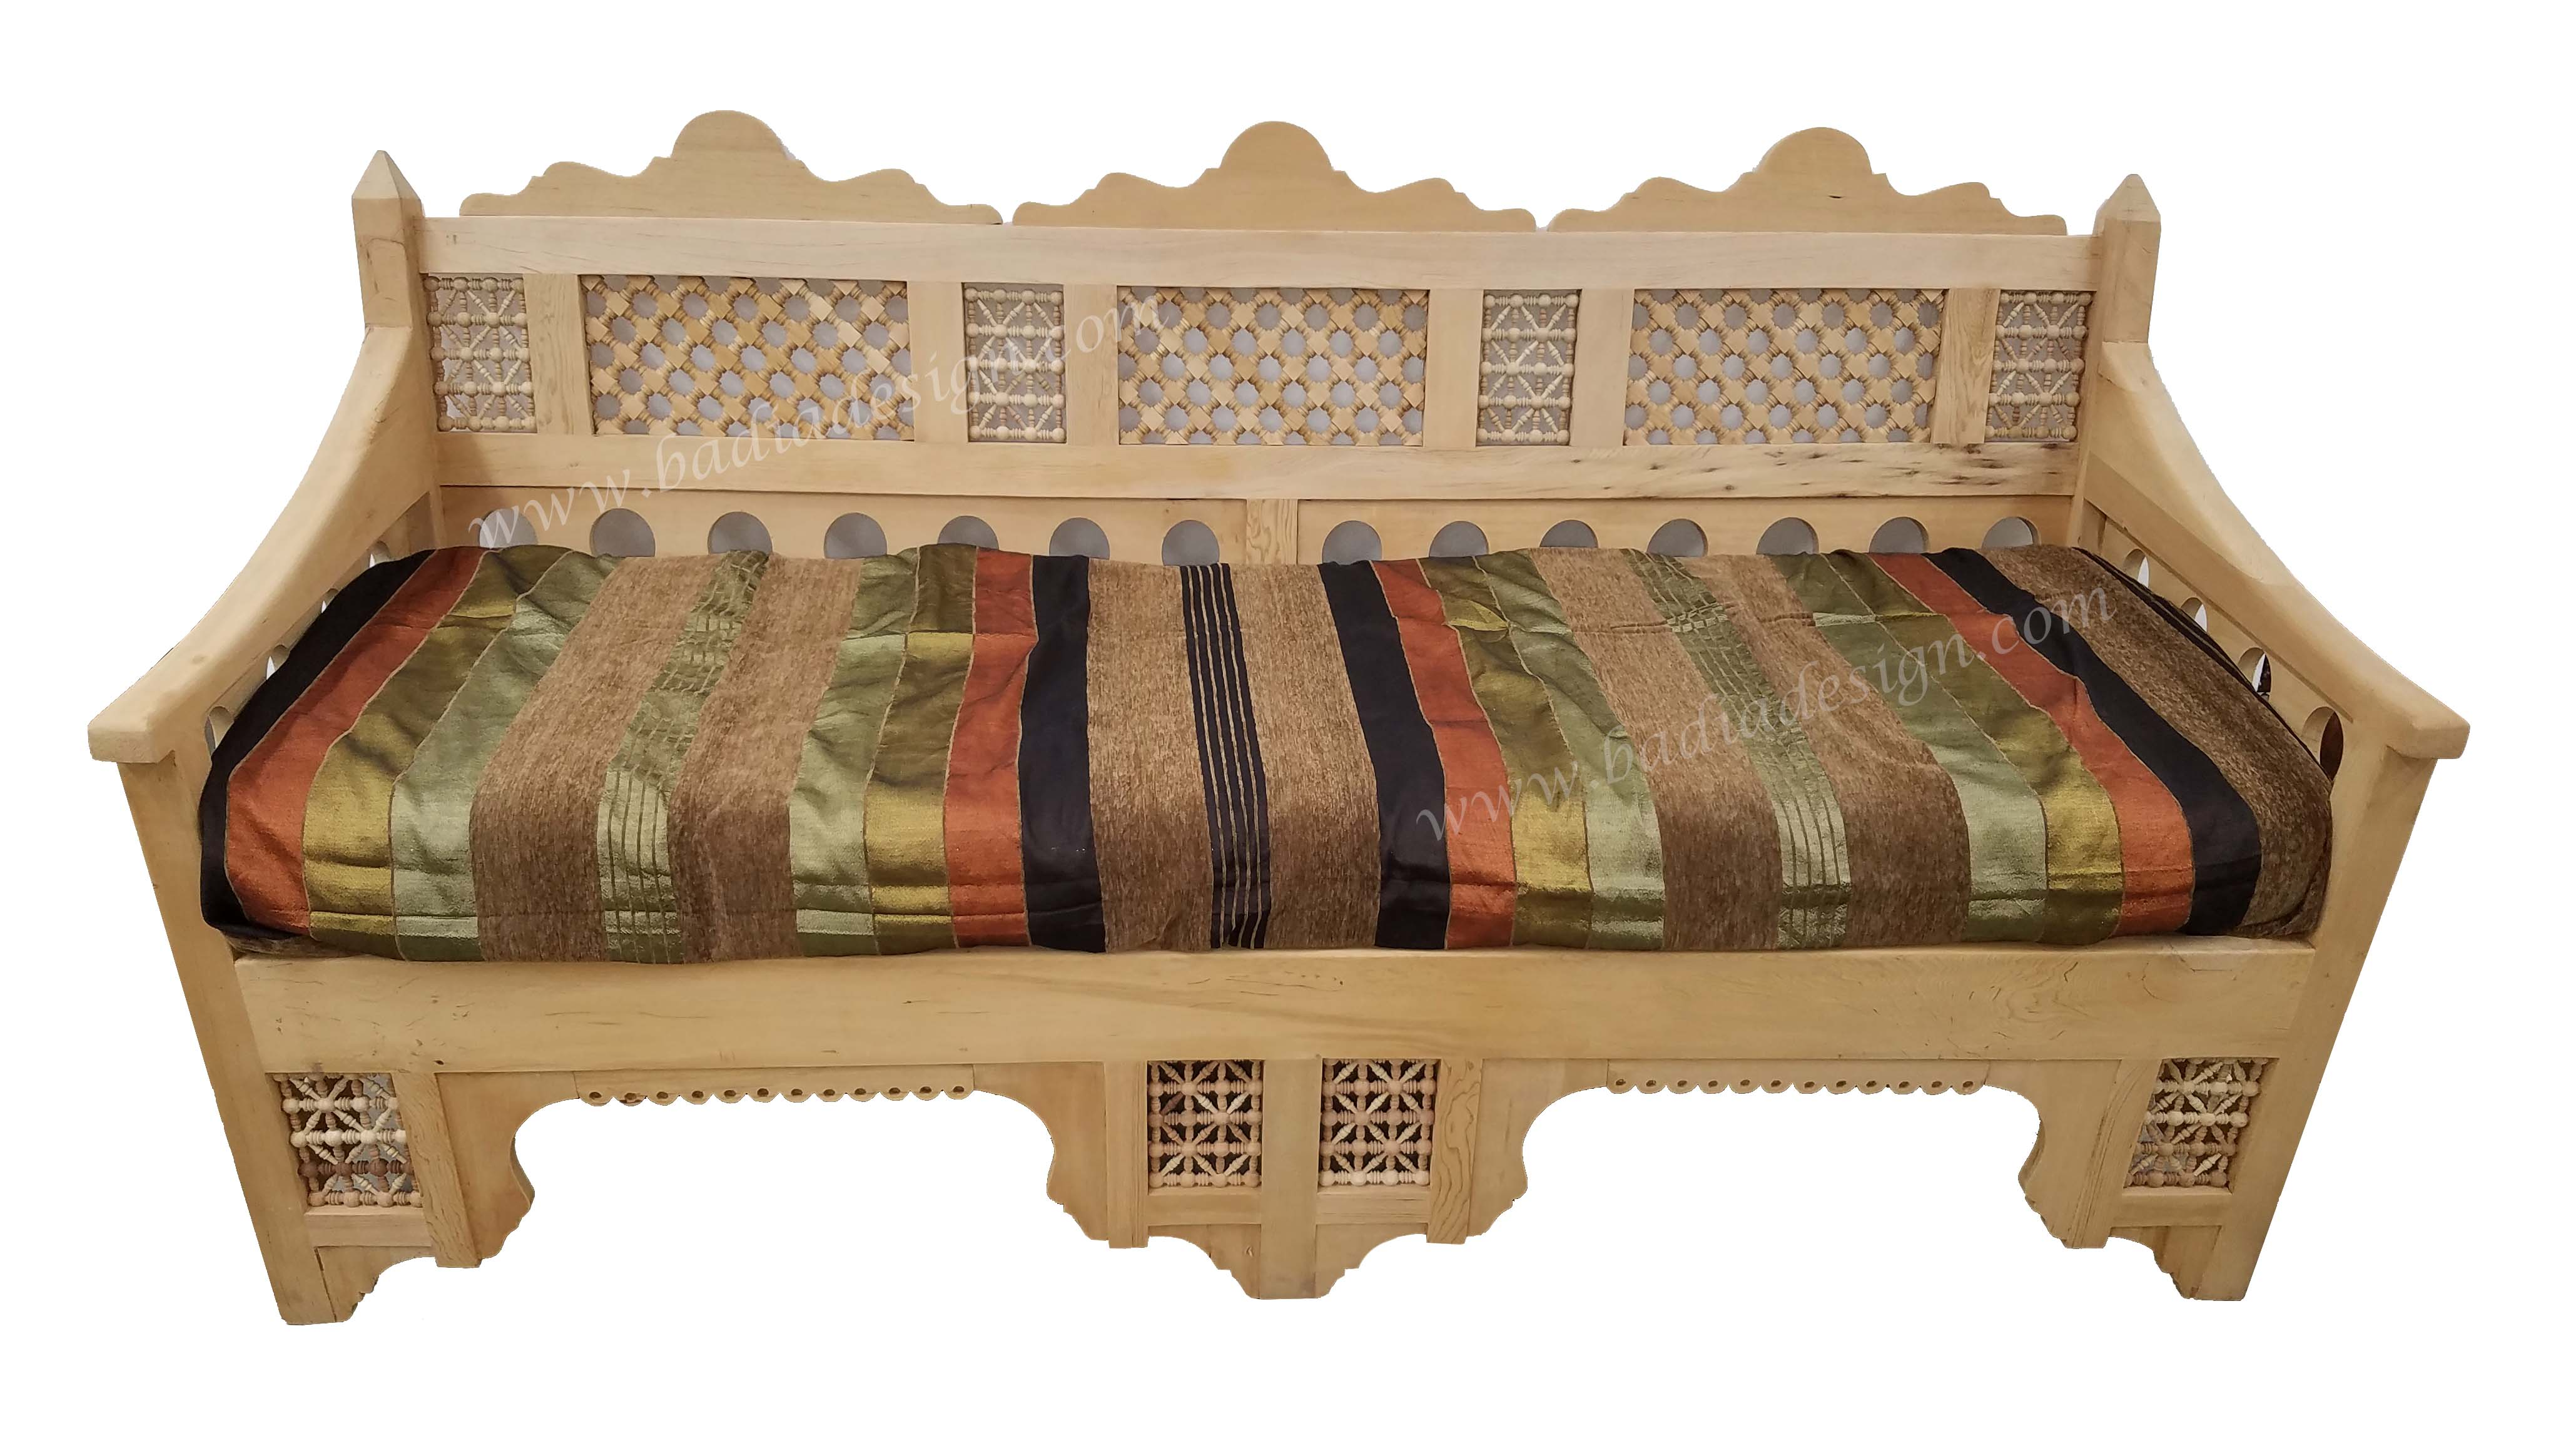 unstained-hand-carved-wooden-sofa-cw-b012-1.jpg